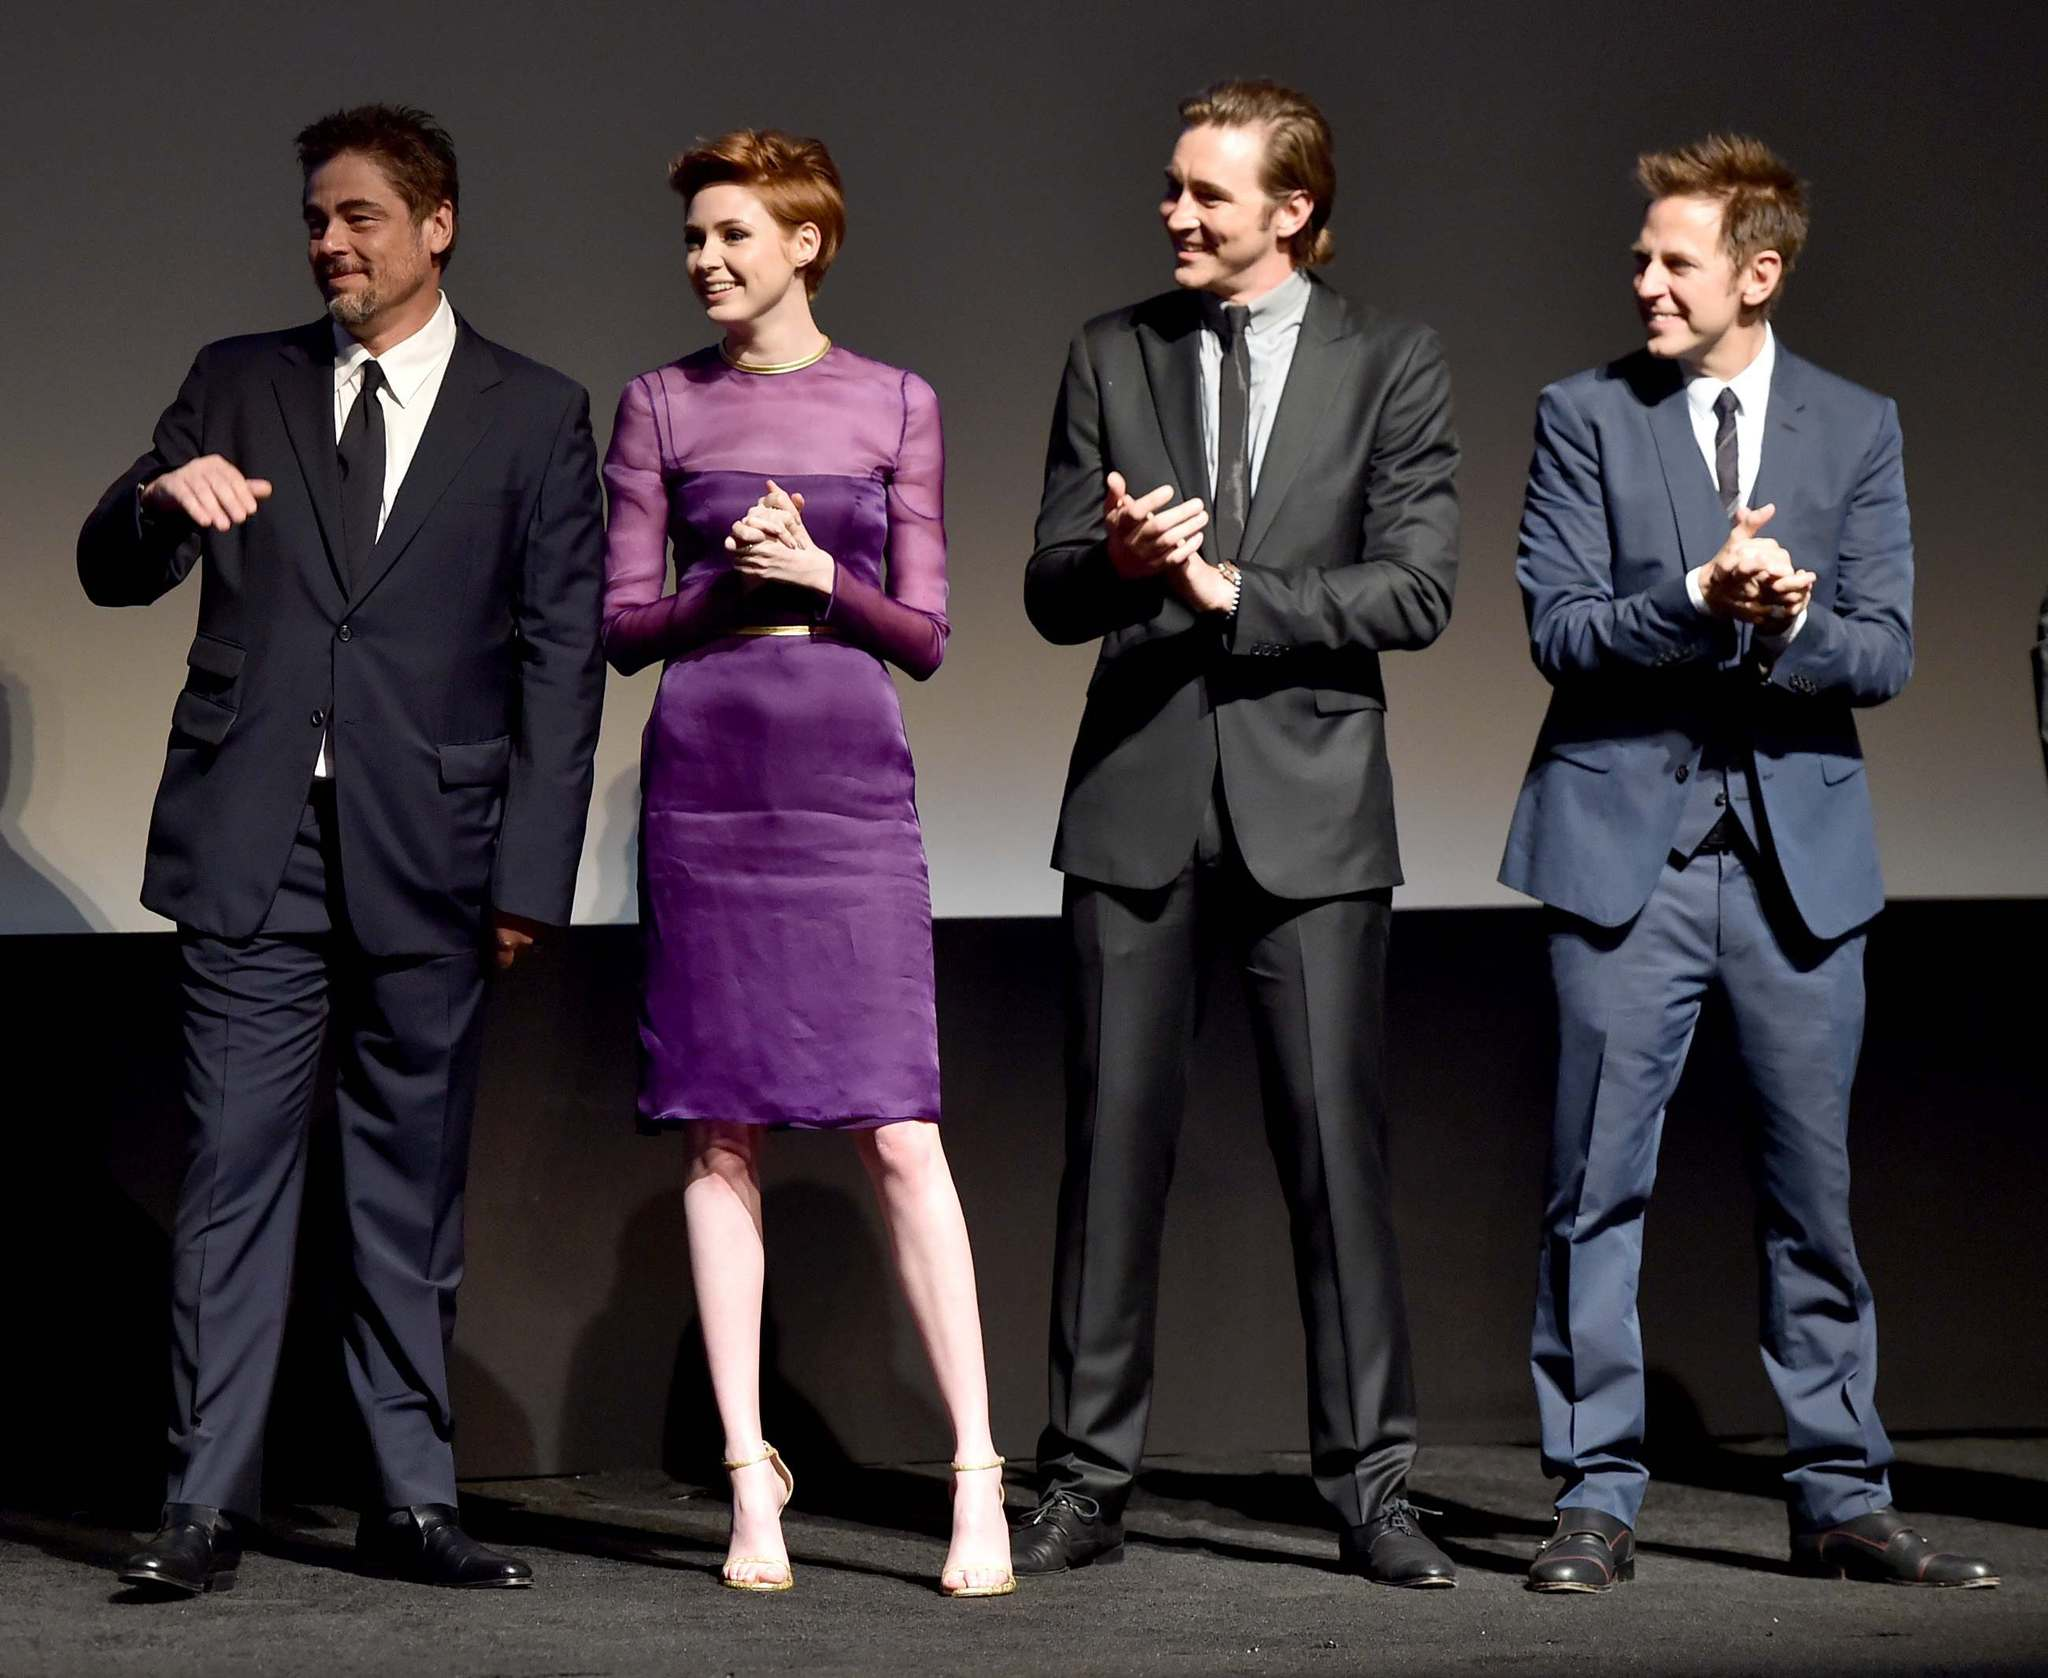 Benicio Del Toro, James Gunn, Lee Pace and Karen Gillan at event of Guardians of the Galaxy (2014) photo #489481